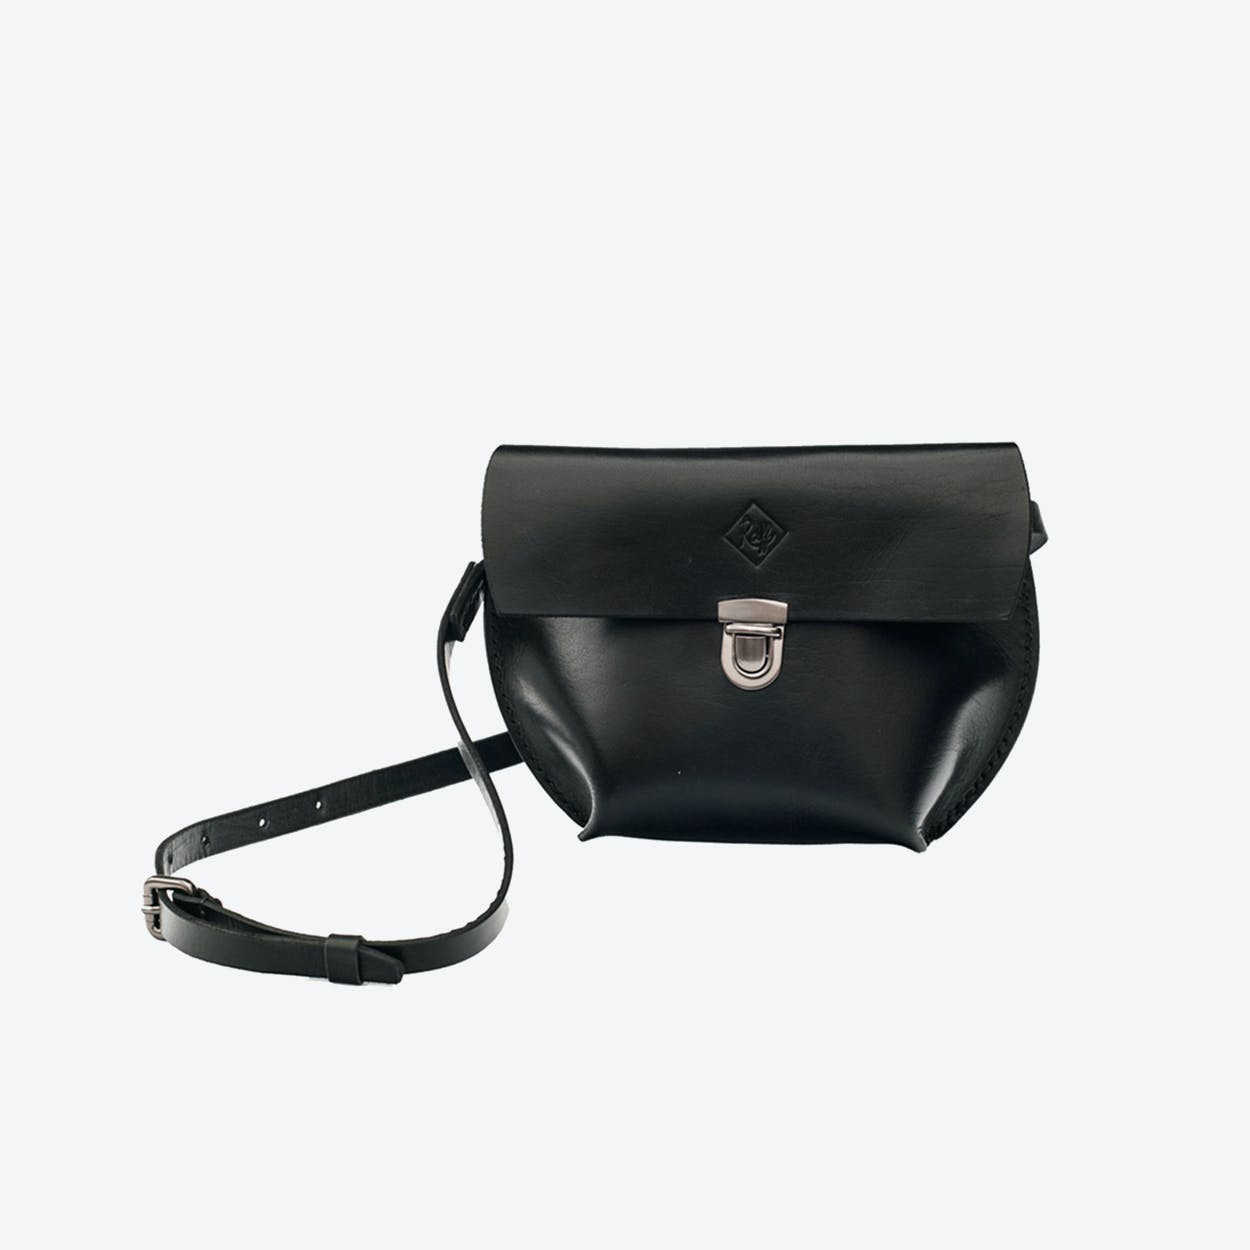 Vega Crossbody Bag in Black